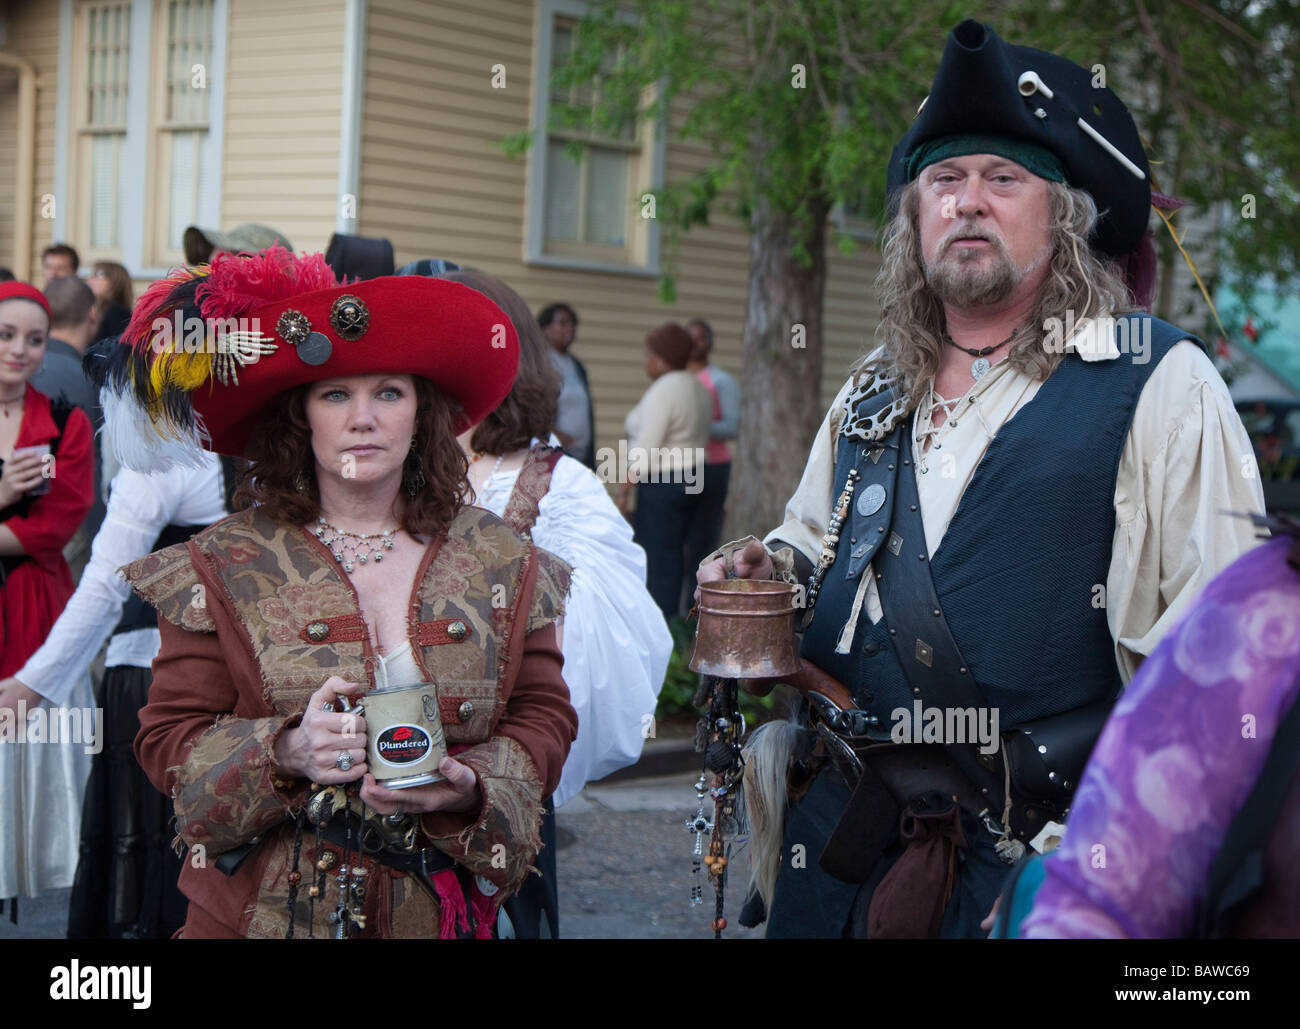 Pirates Parade in New Orleans - Stock Image